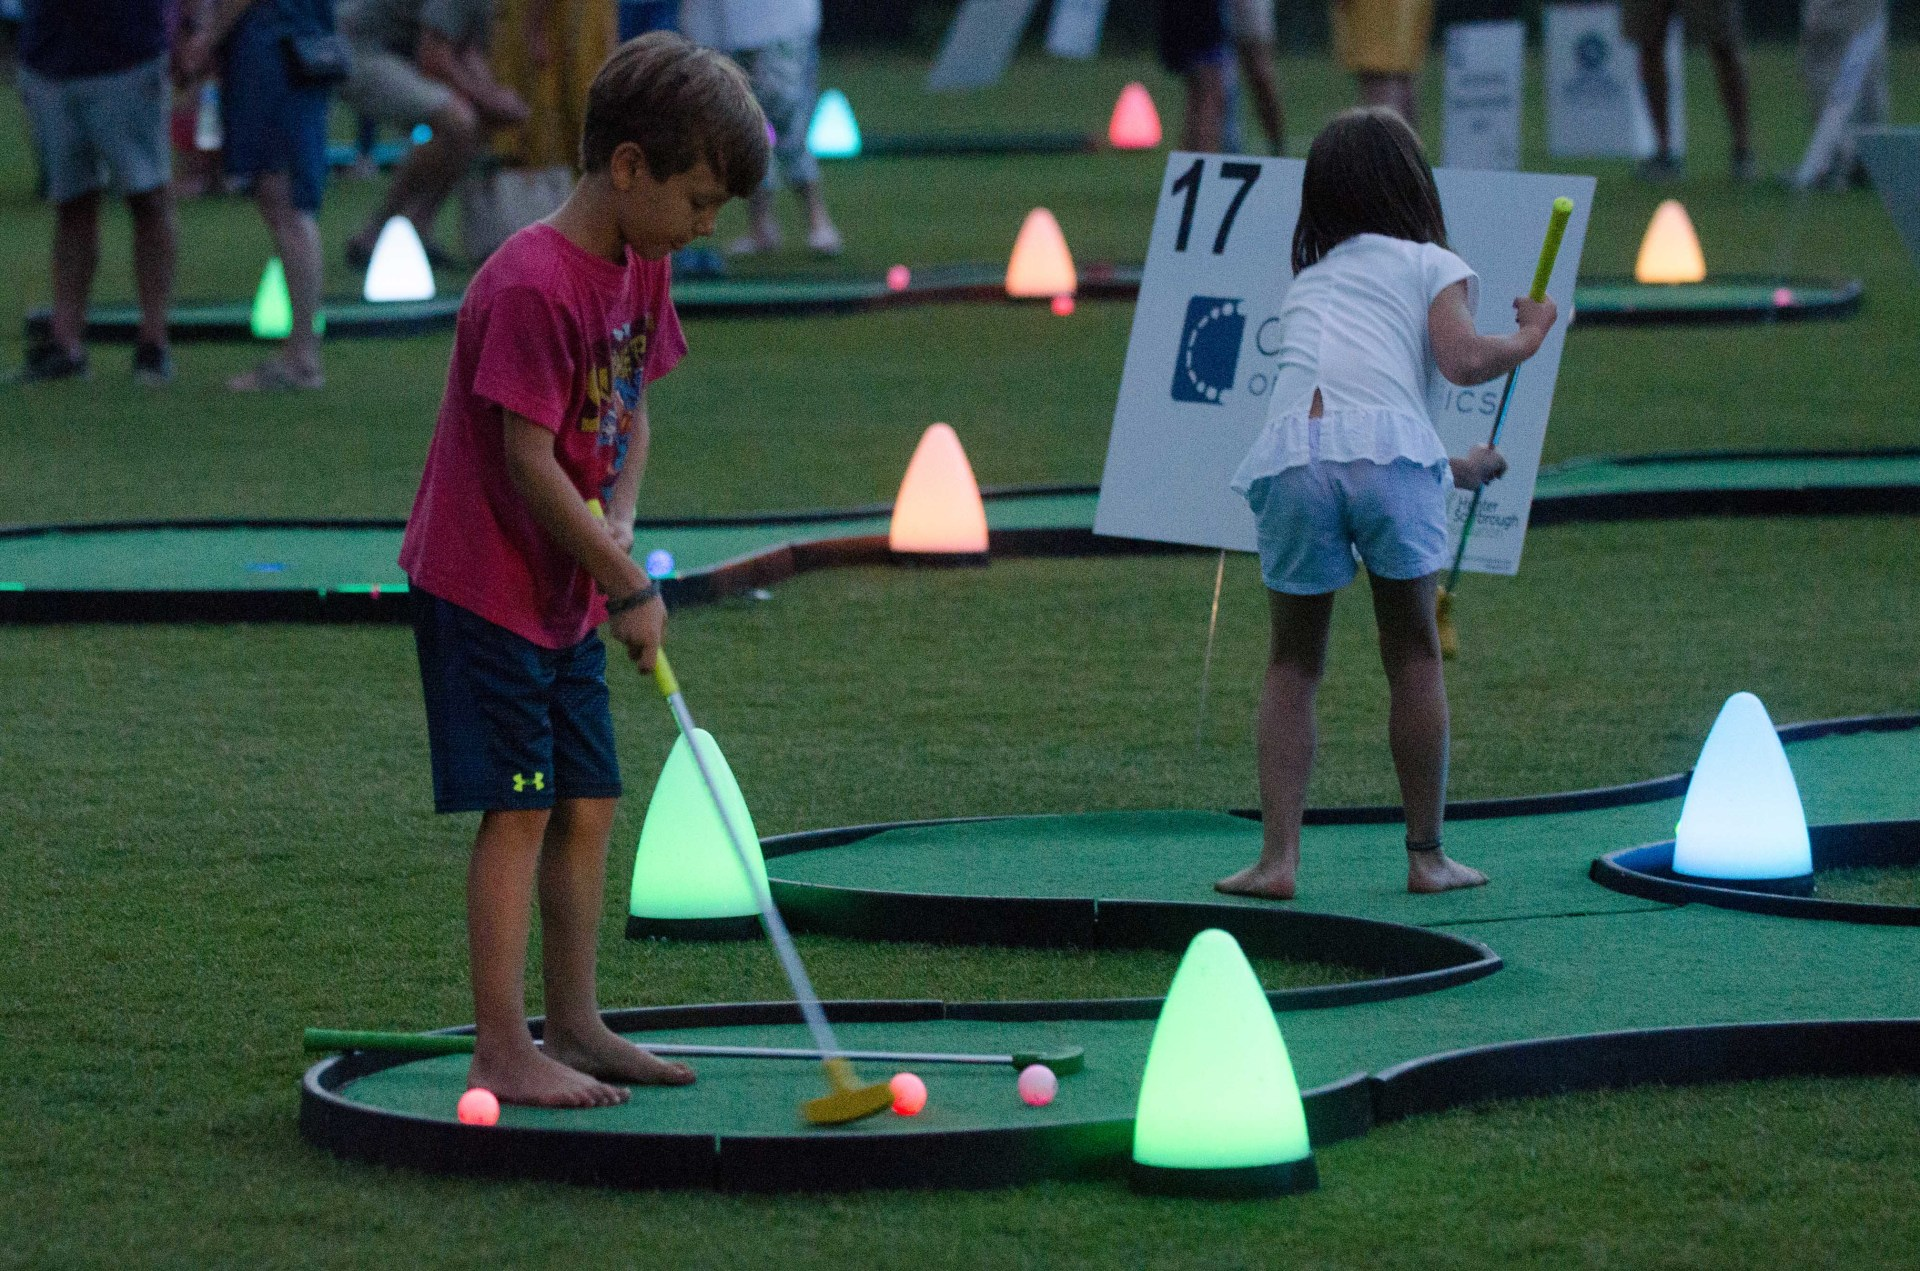 Second annual Hunter Scarbrough Foundation Glow Golf Extravaganza puts the 'fun' in fundraiser